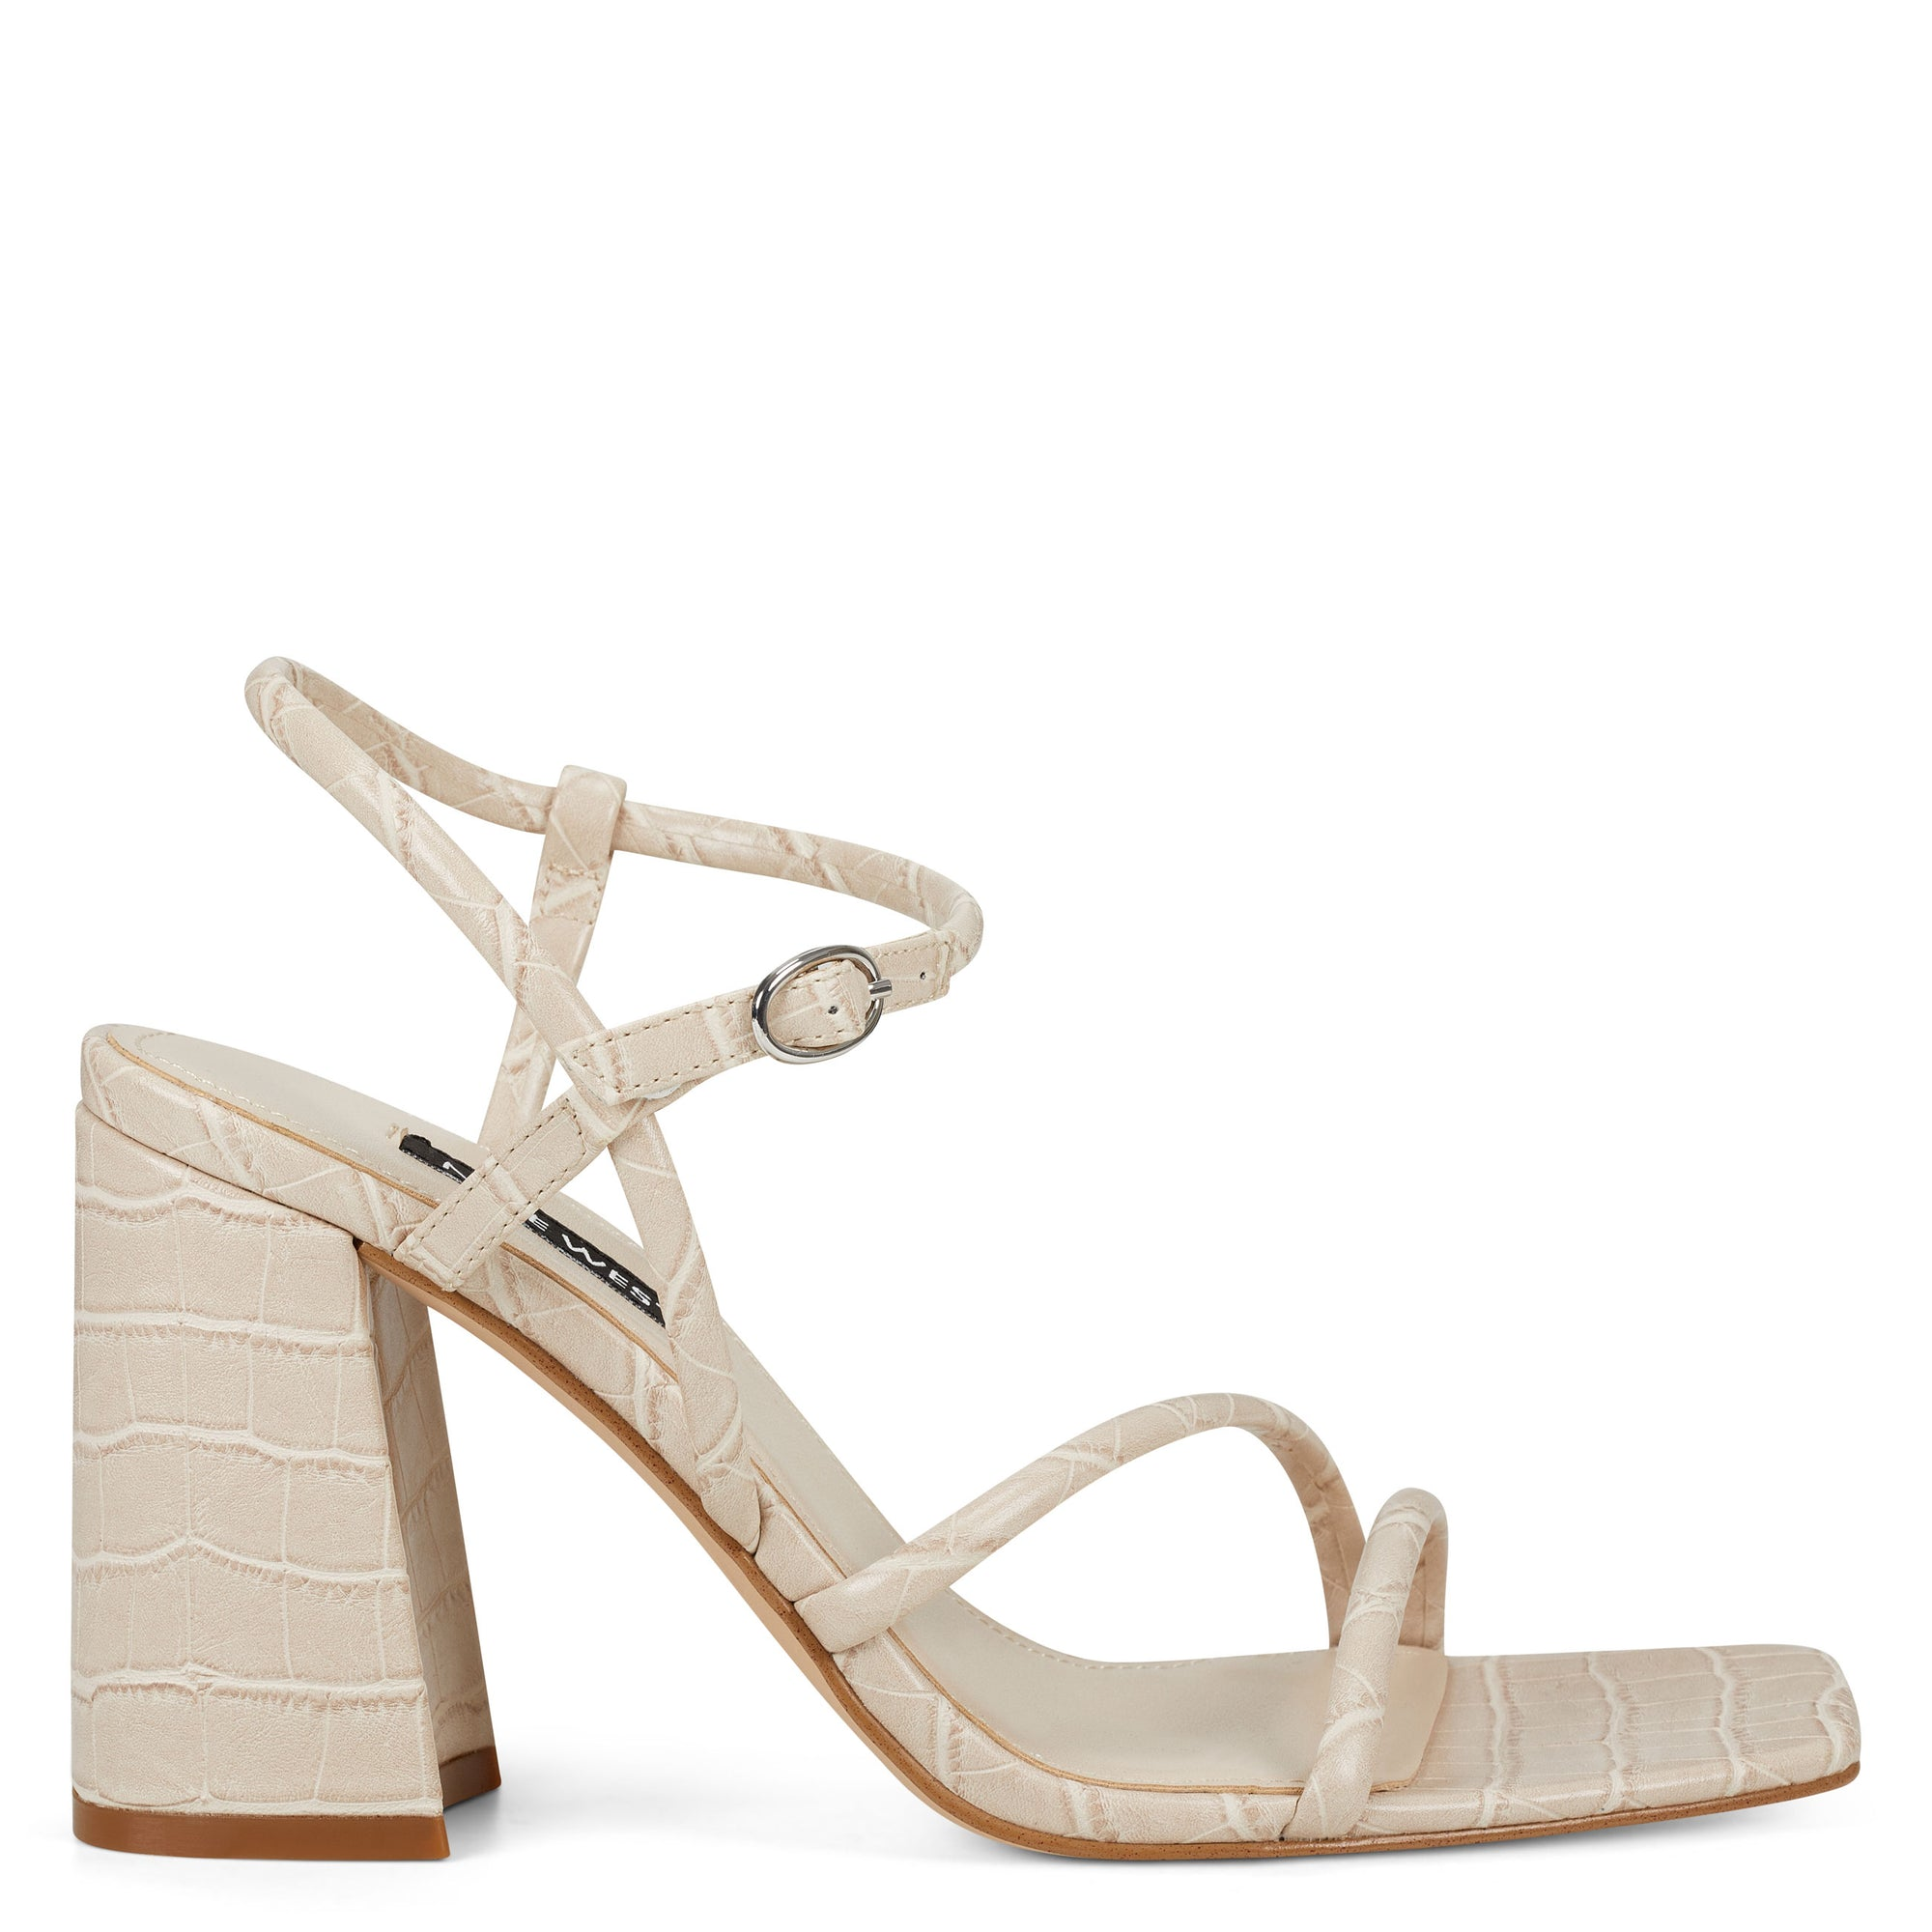 Gellar Block Heel Sandals